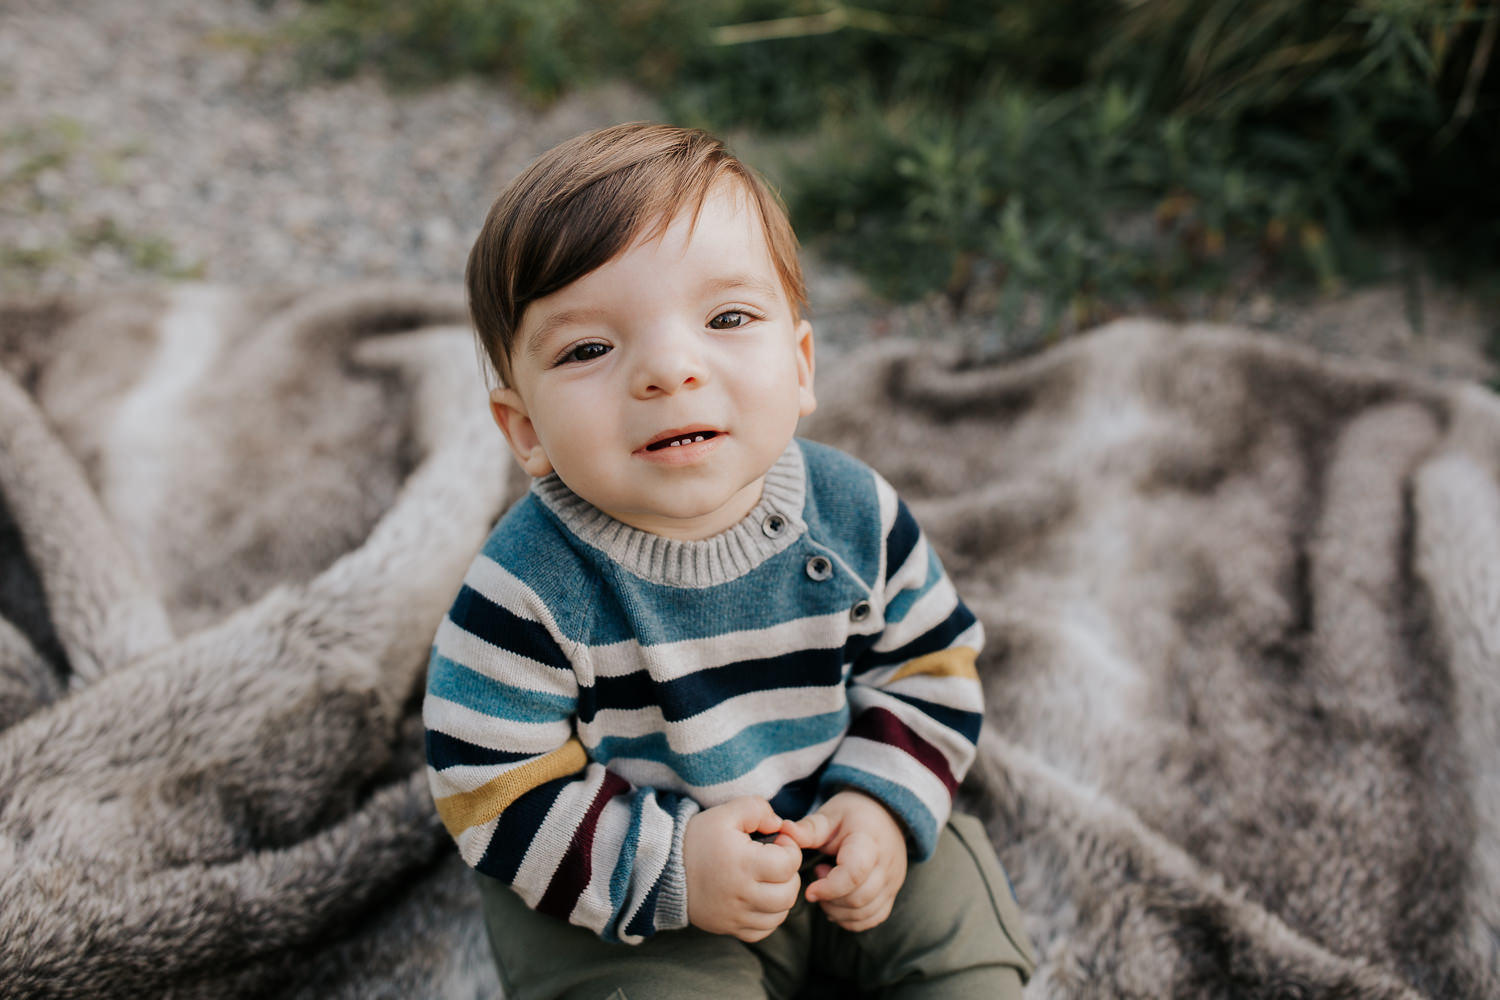 1 year old boy with brown hair and eyes wearing striped sweater sitting on blanket in outdoor path looking up at camera - Newmarket Golden Hour Photos